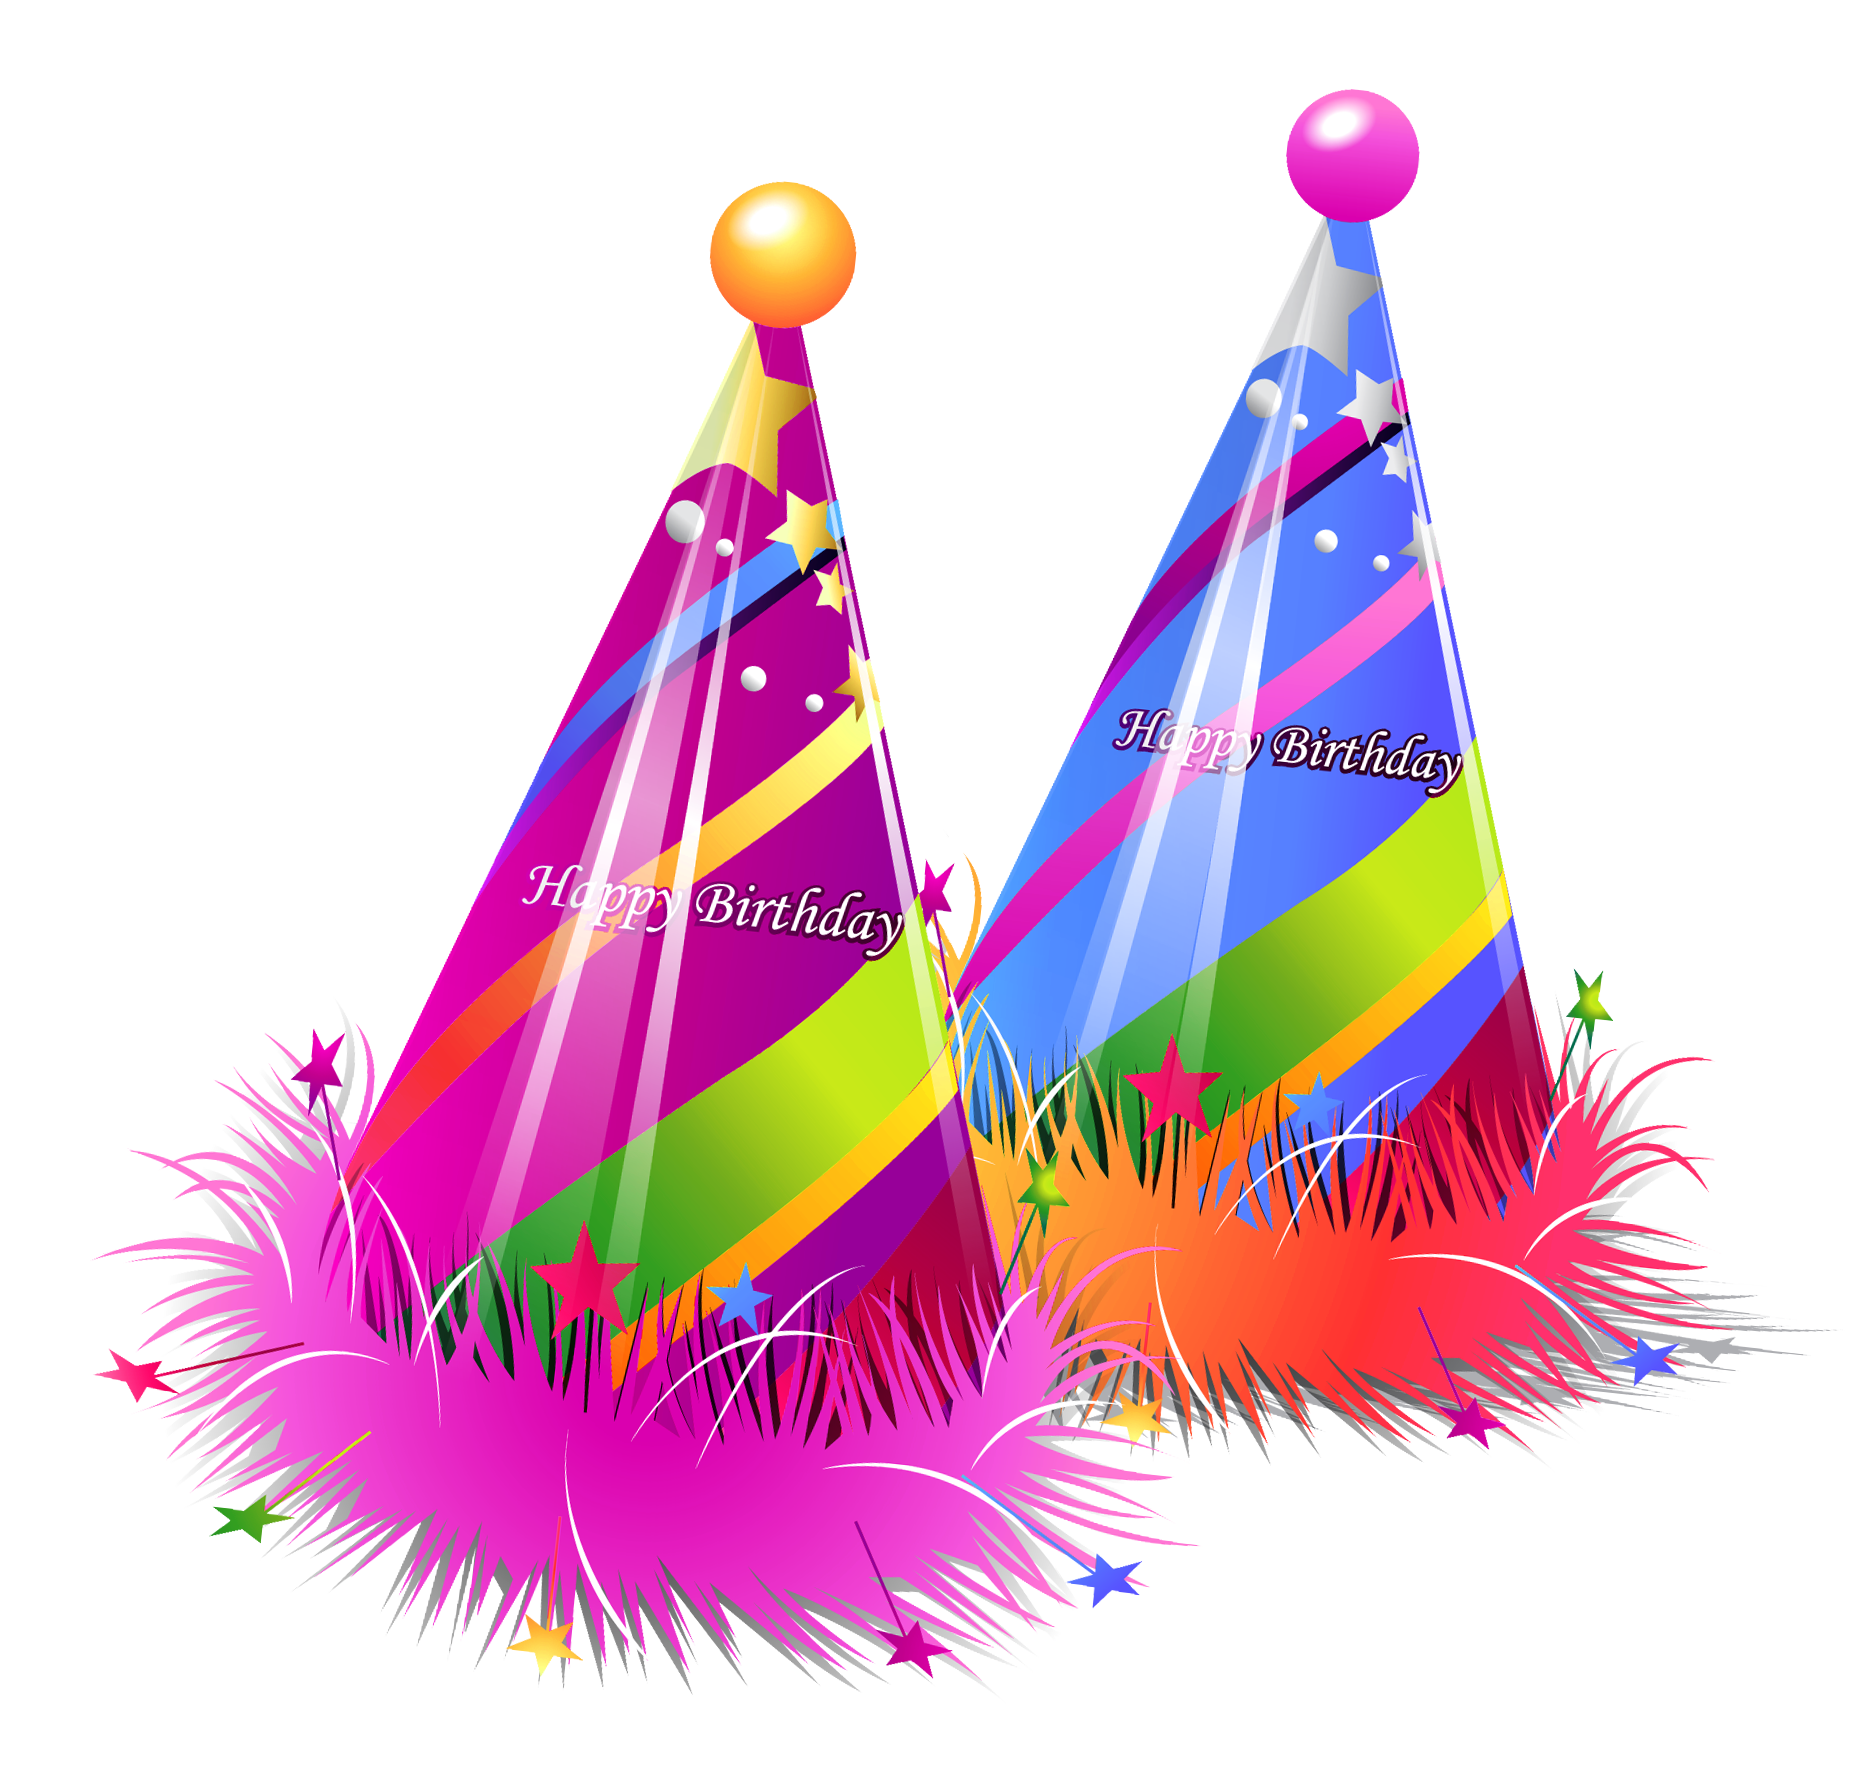 graphic free Happy party hats transparent. 6 clipart birthday bash.